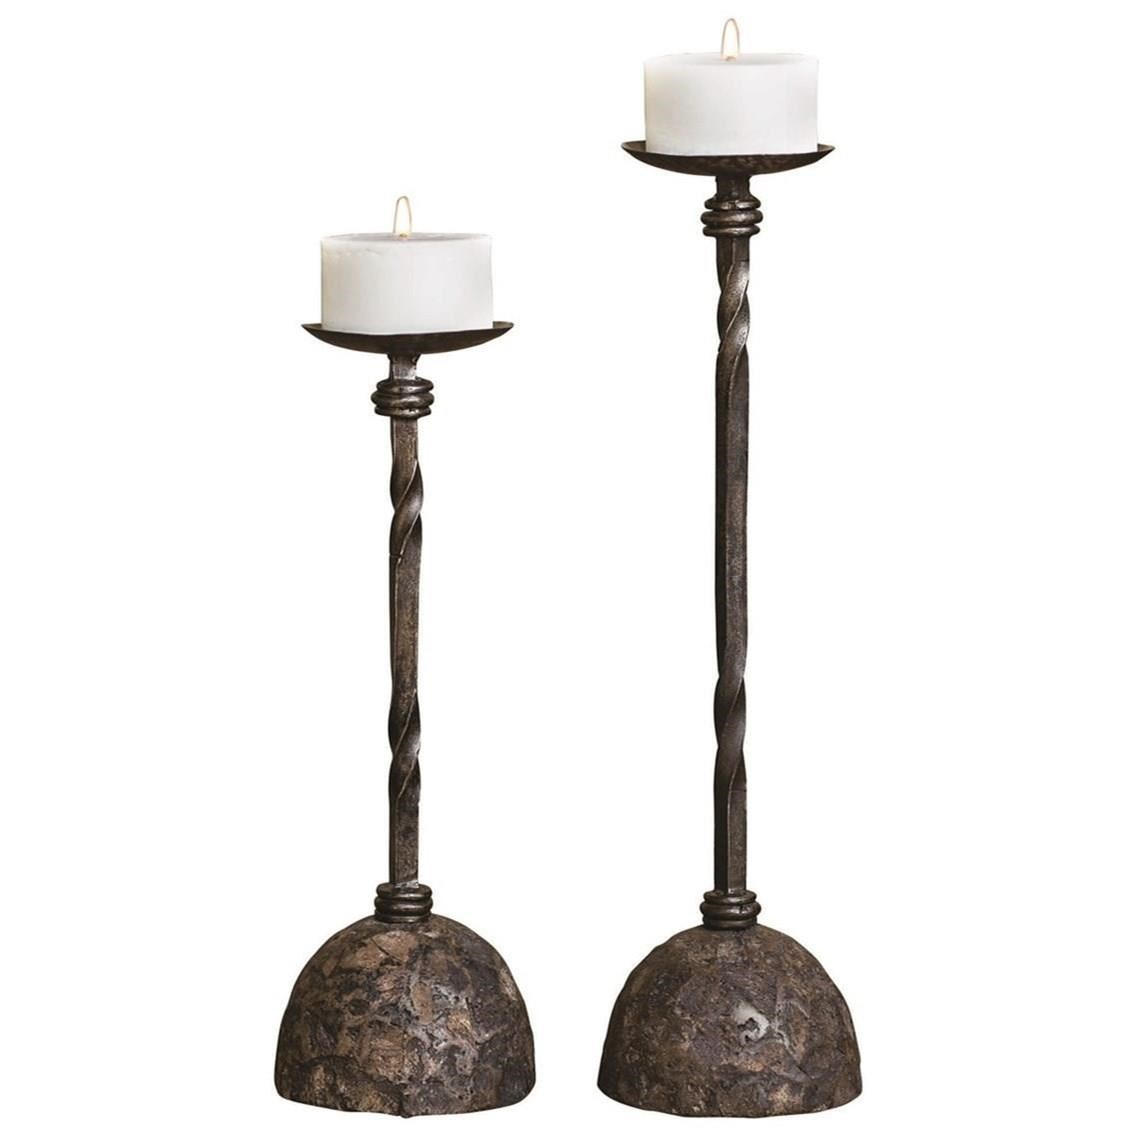 Gold Uttermost 19957 Lucy Candleholders Set of 2